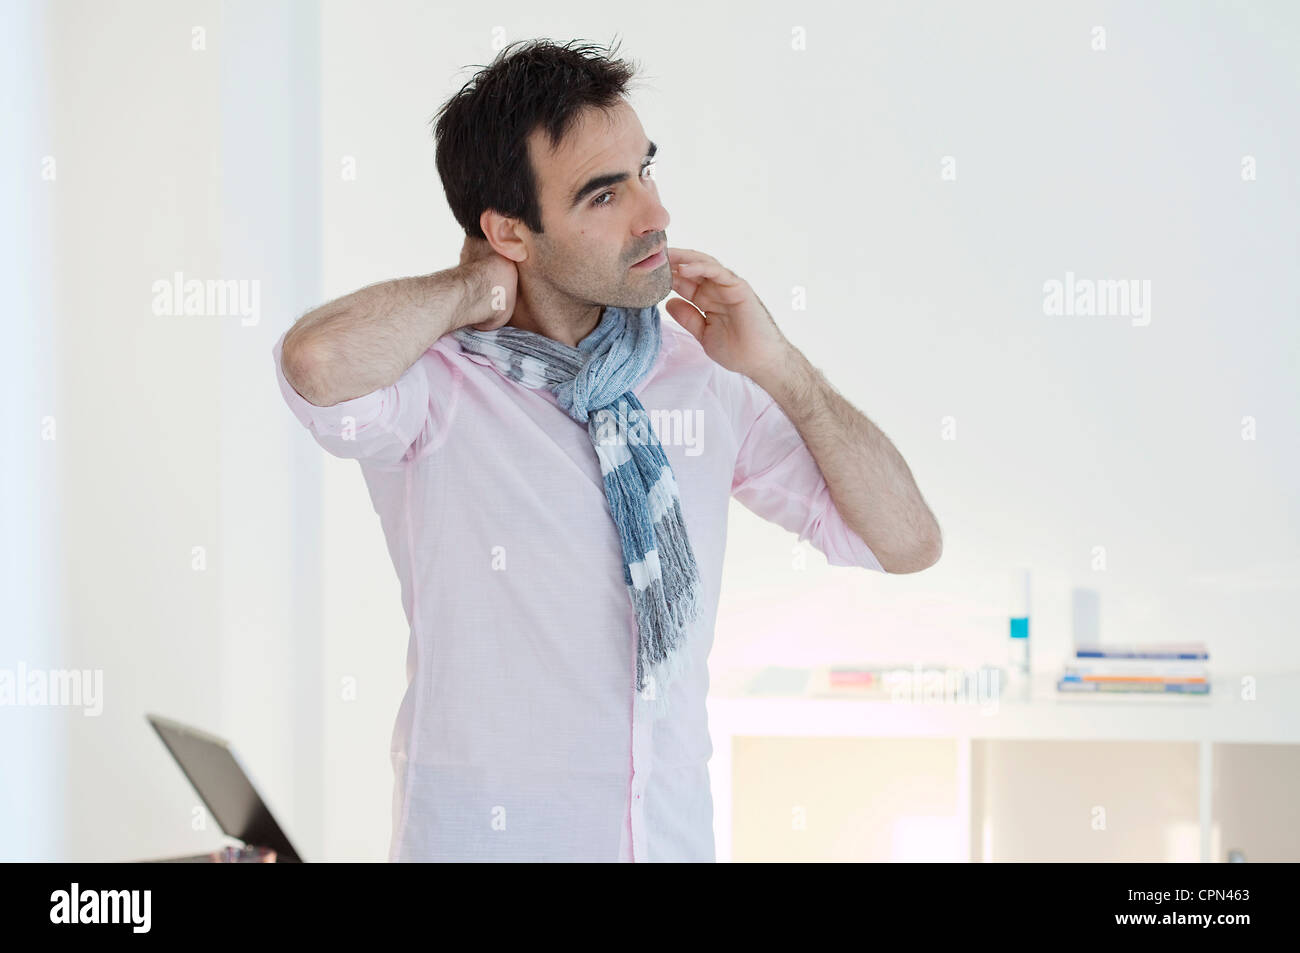 CERVICALGIA IN A MAN - Stock Image